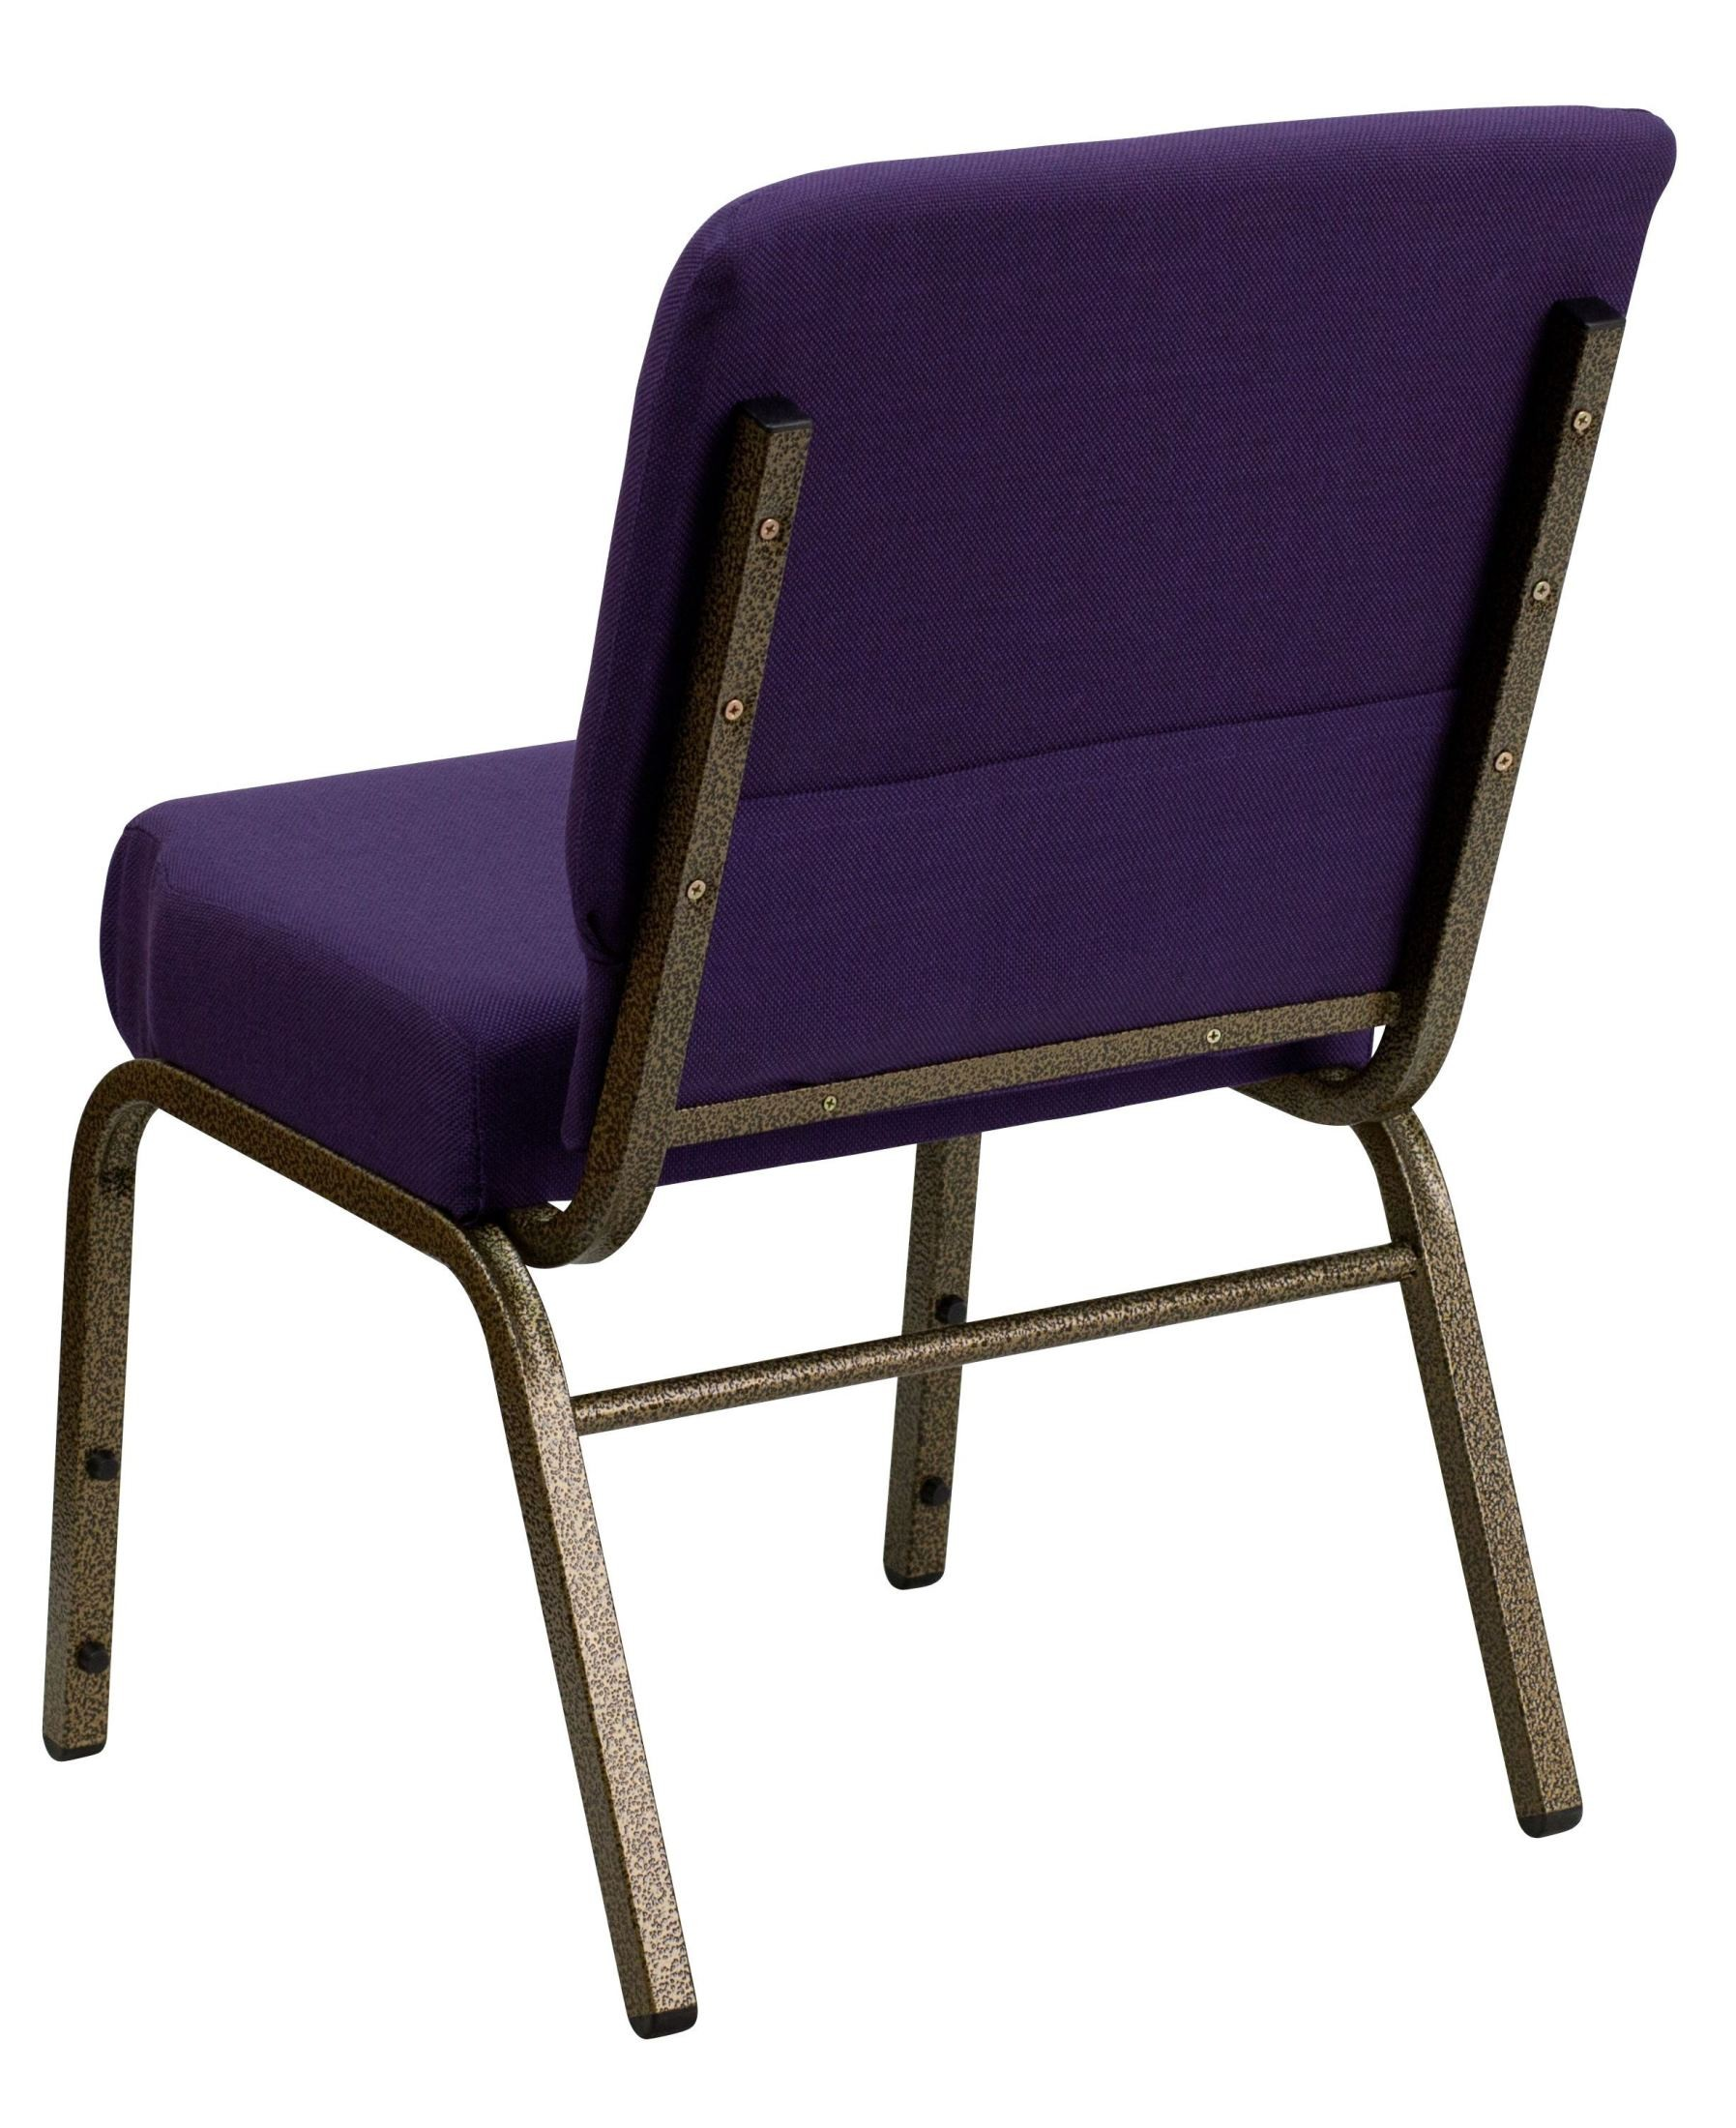 stackable church chairs vibrating baby chair safe hercules series extra wide royal purple stacking